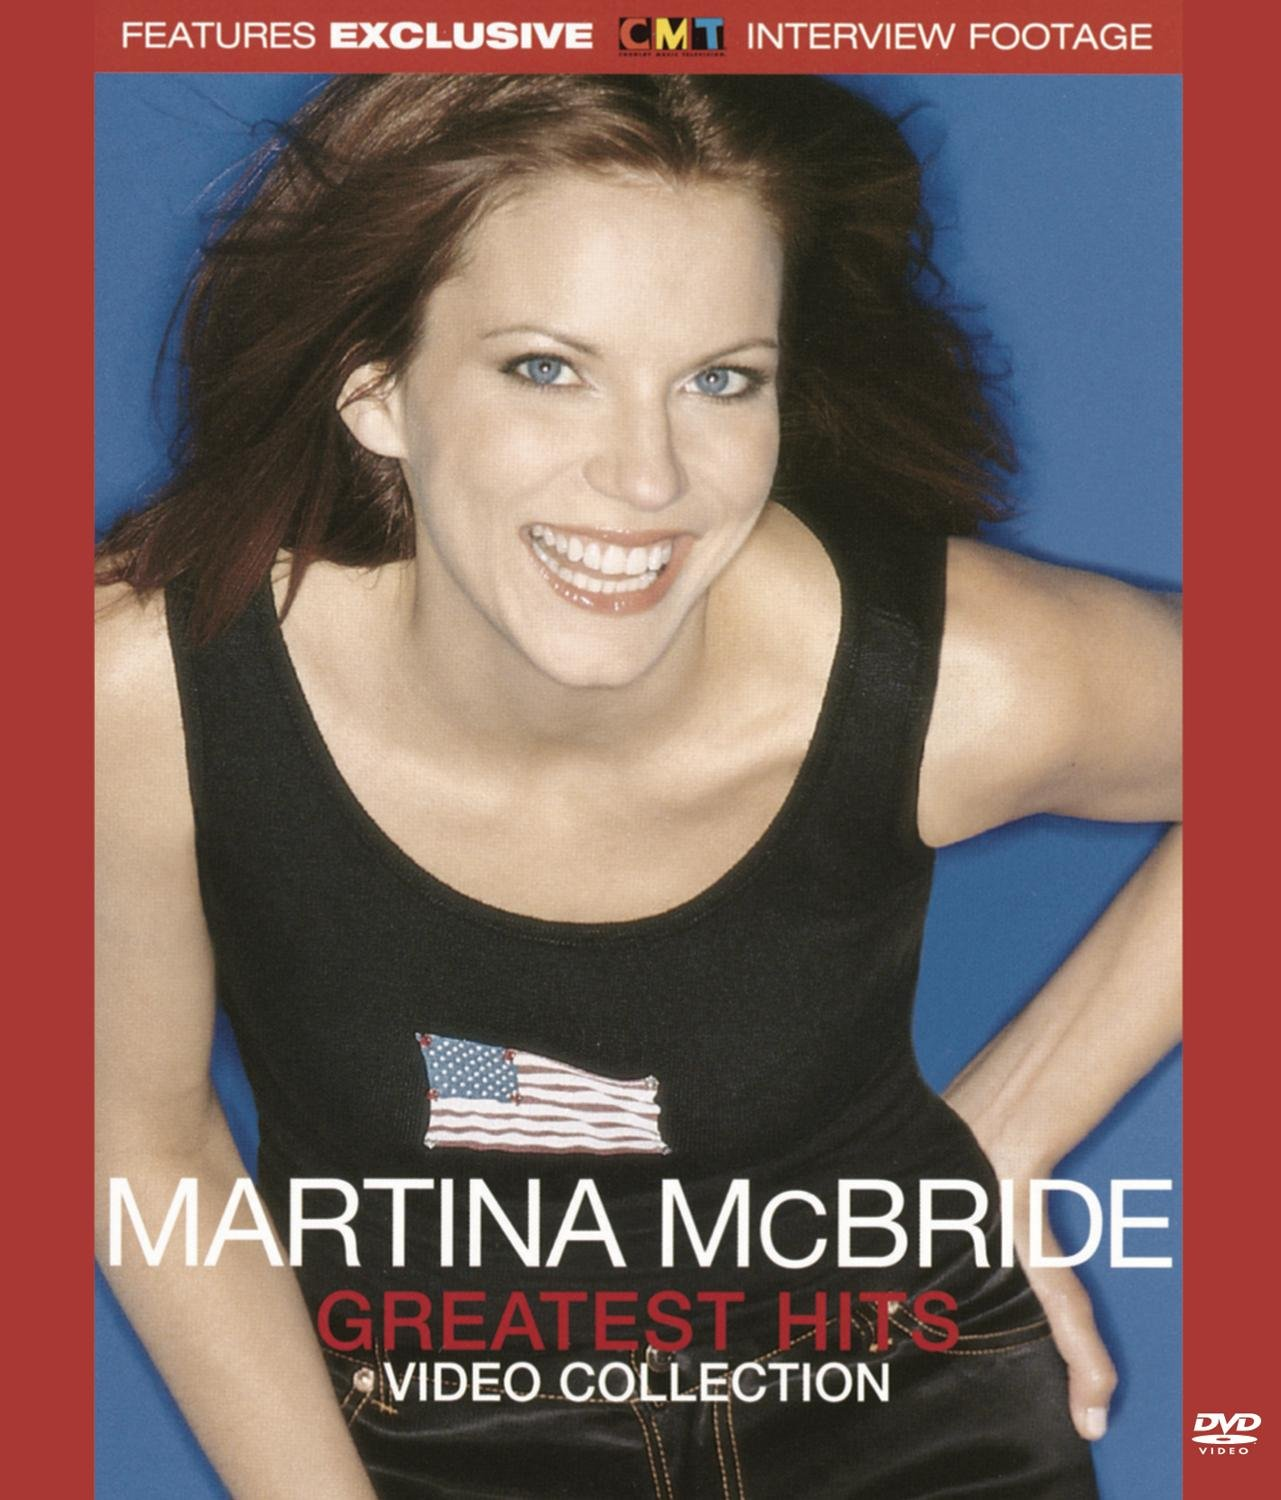 DVD : Martina McBride - Greatest Hits (Super Jewel Box)